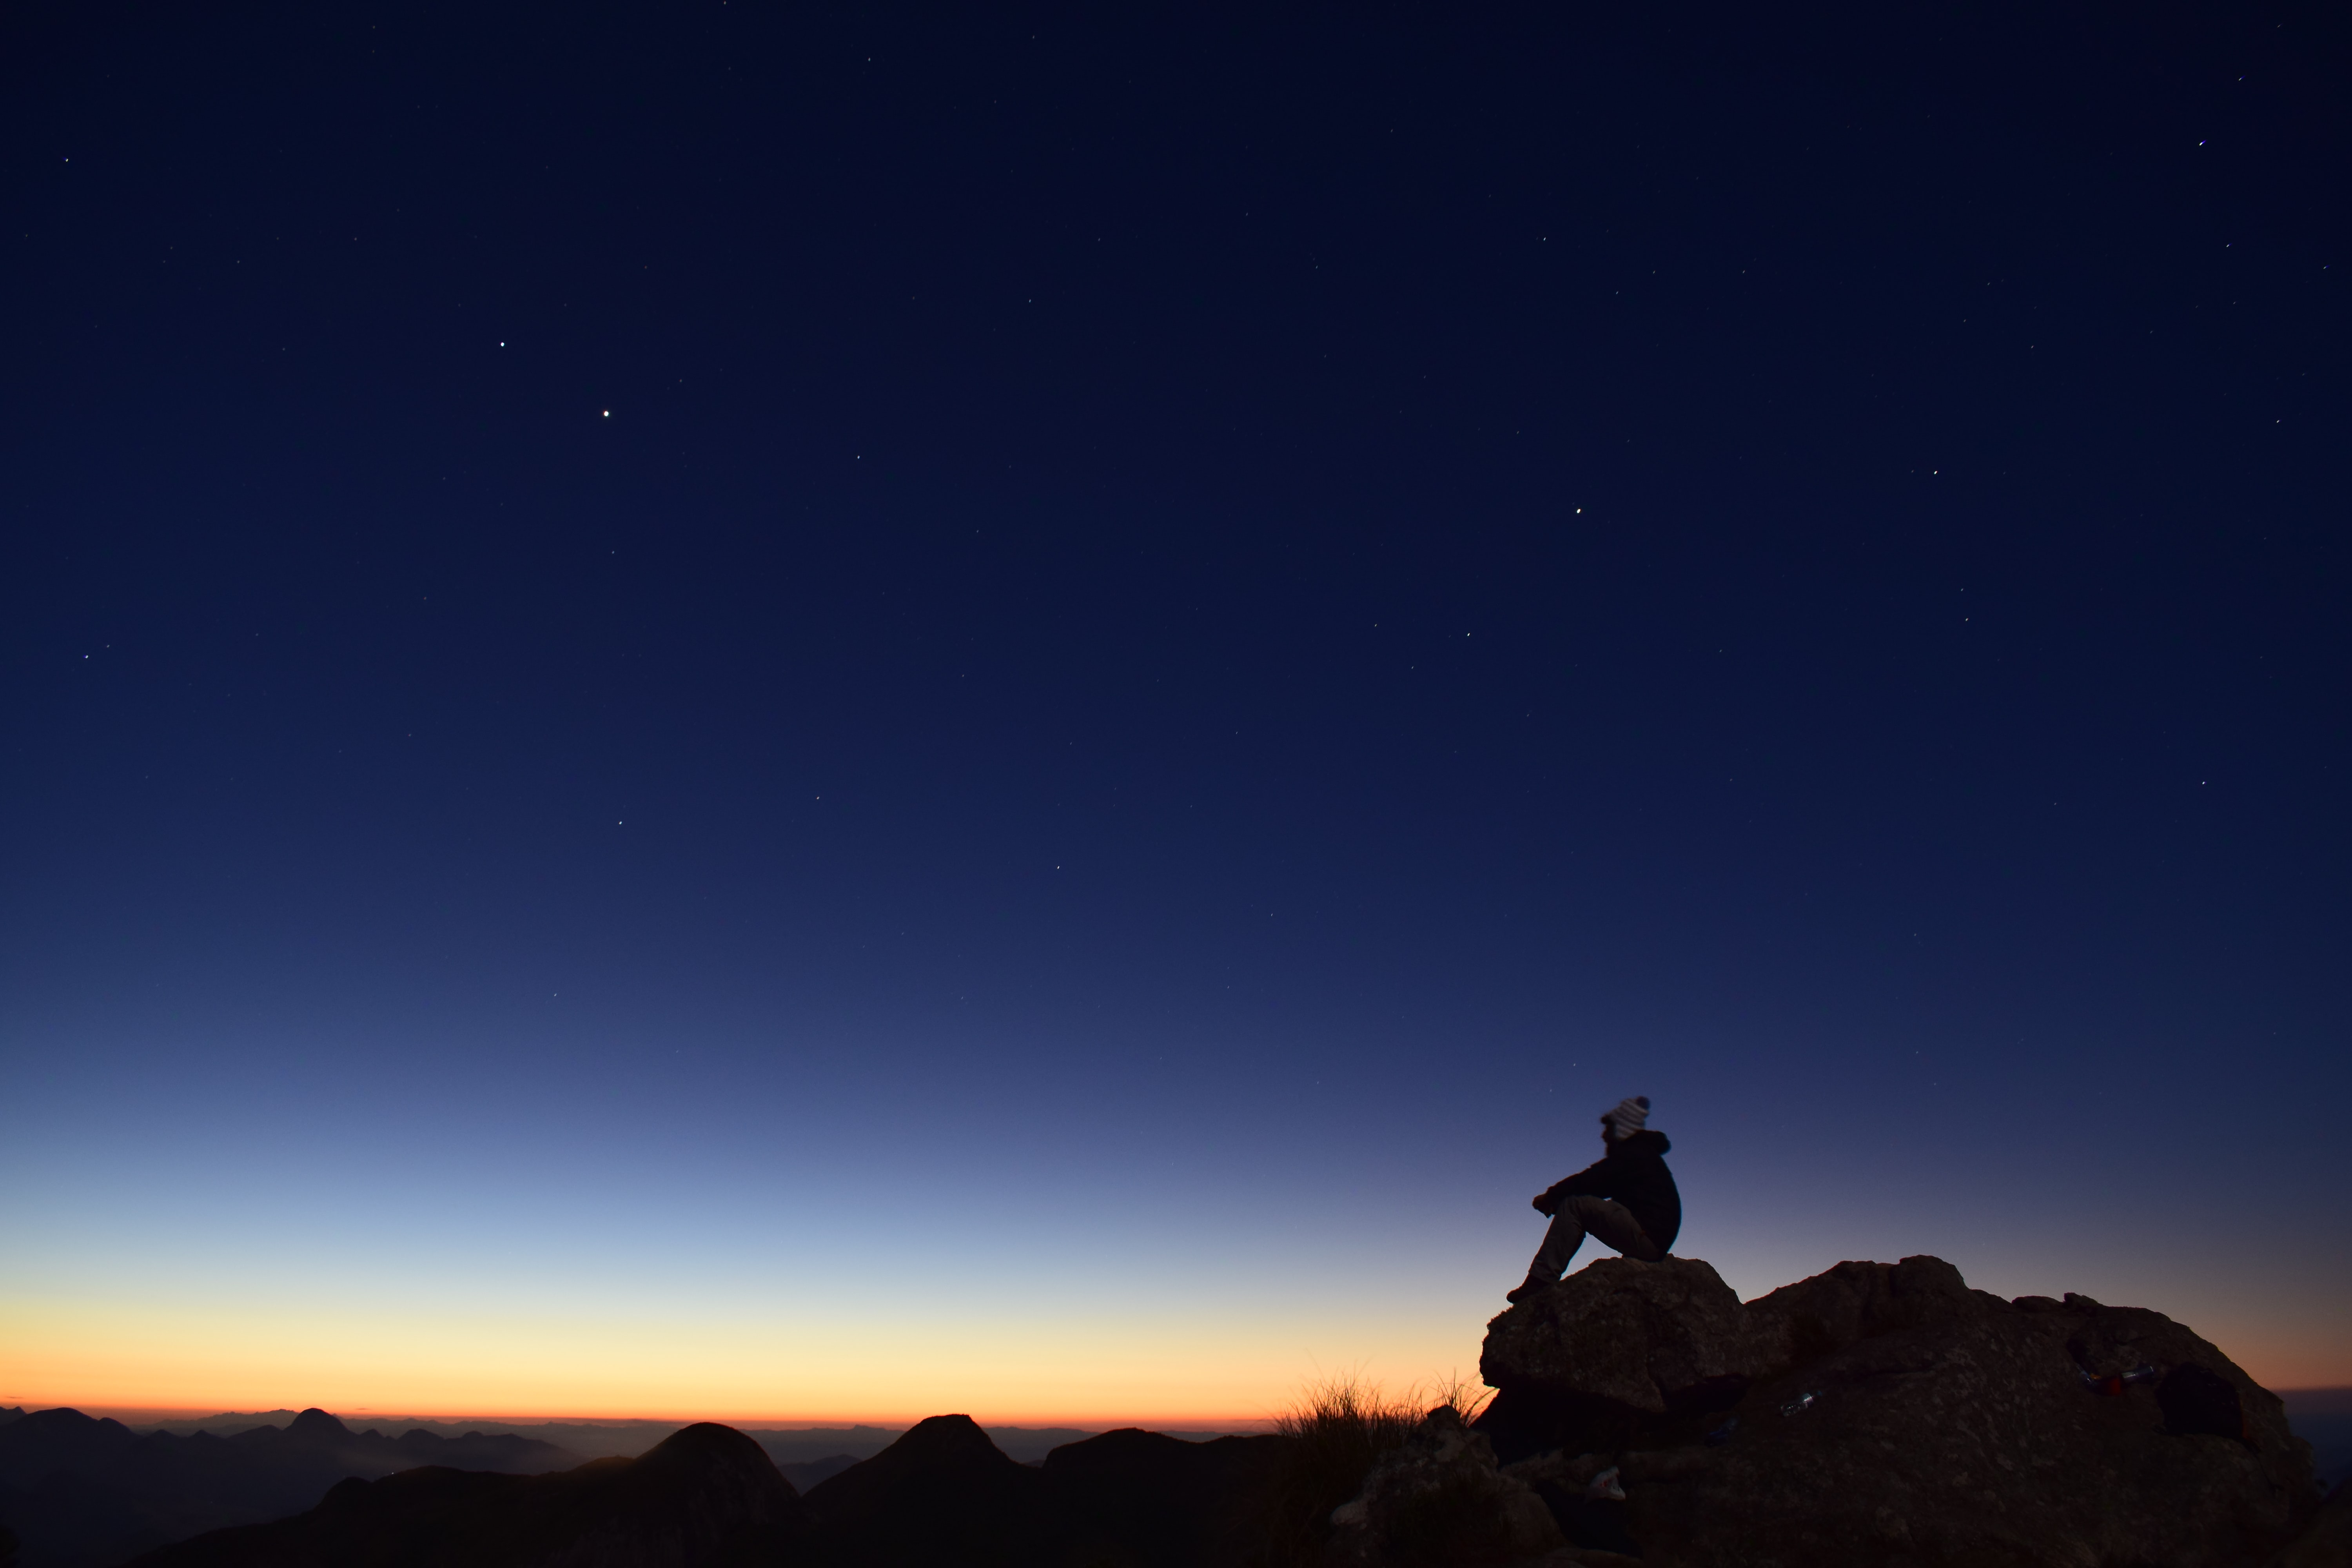 silhouette of person sitting on rock during night time